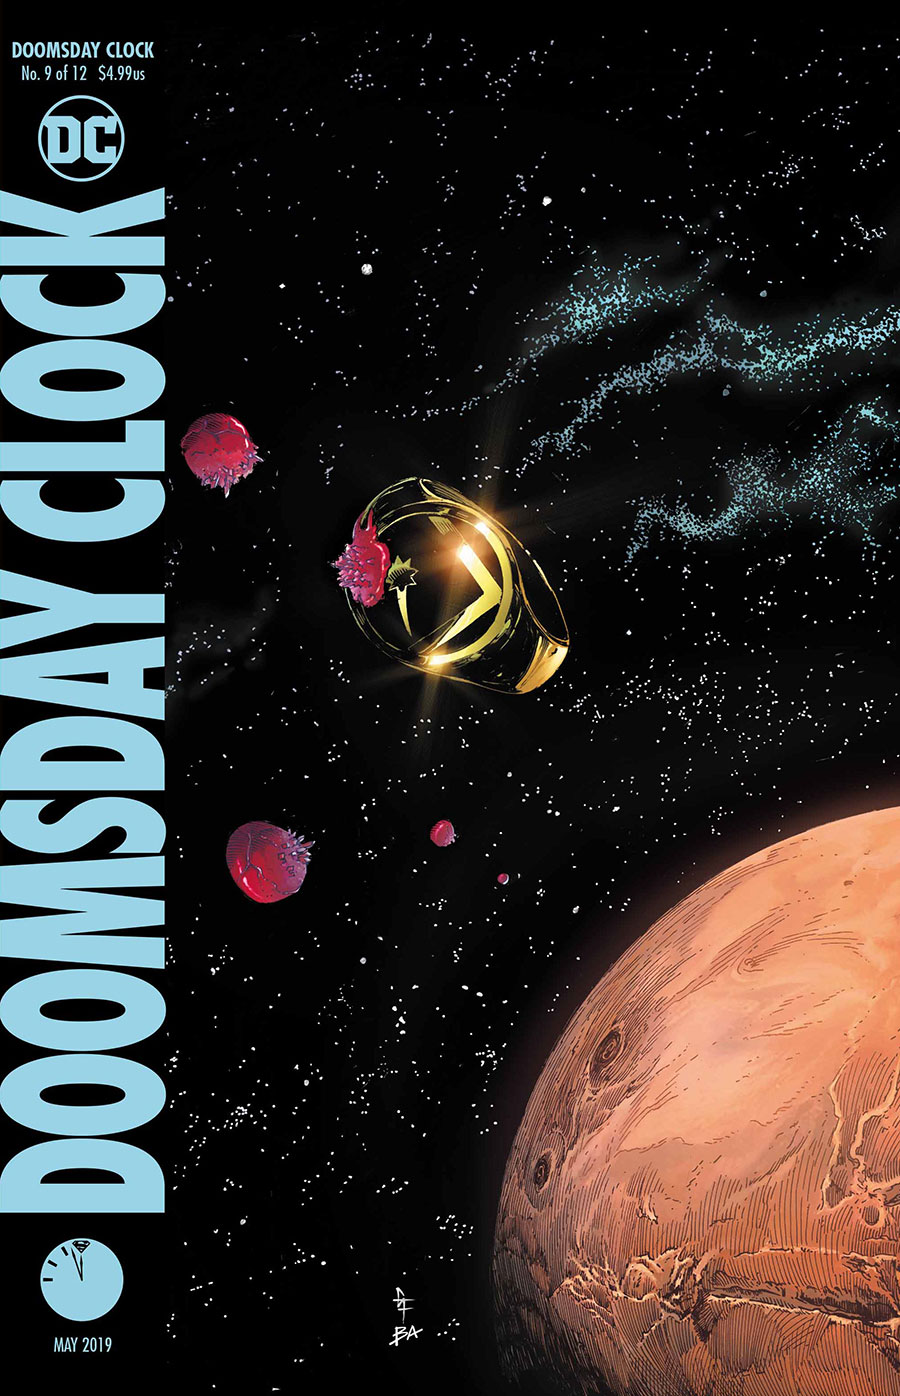 Doomsday Clock Cover 9